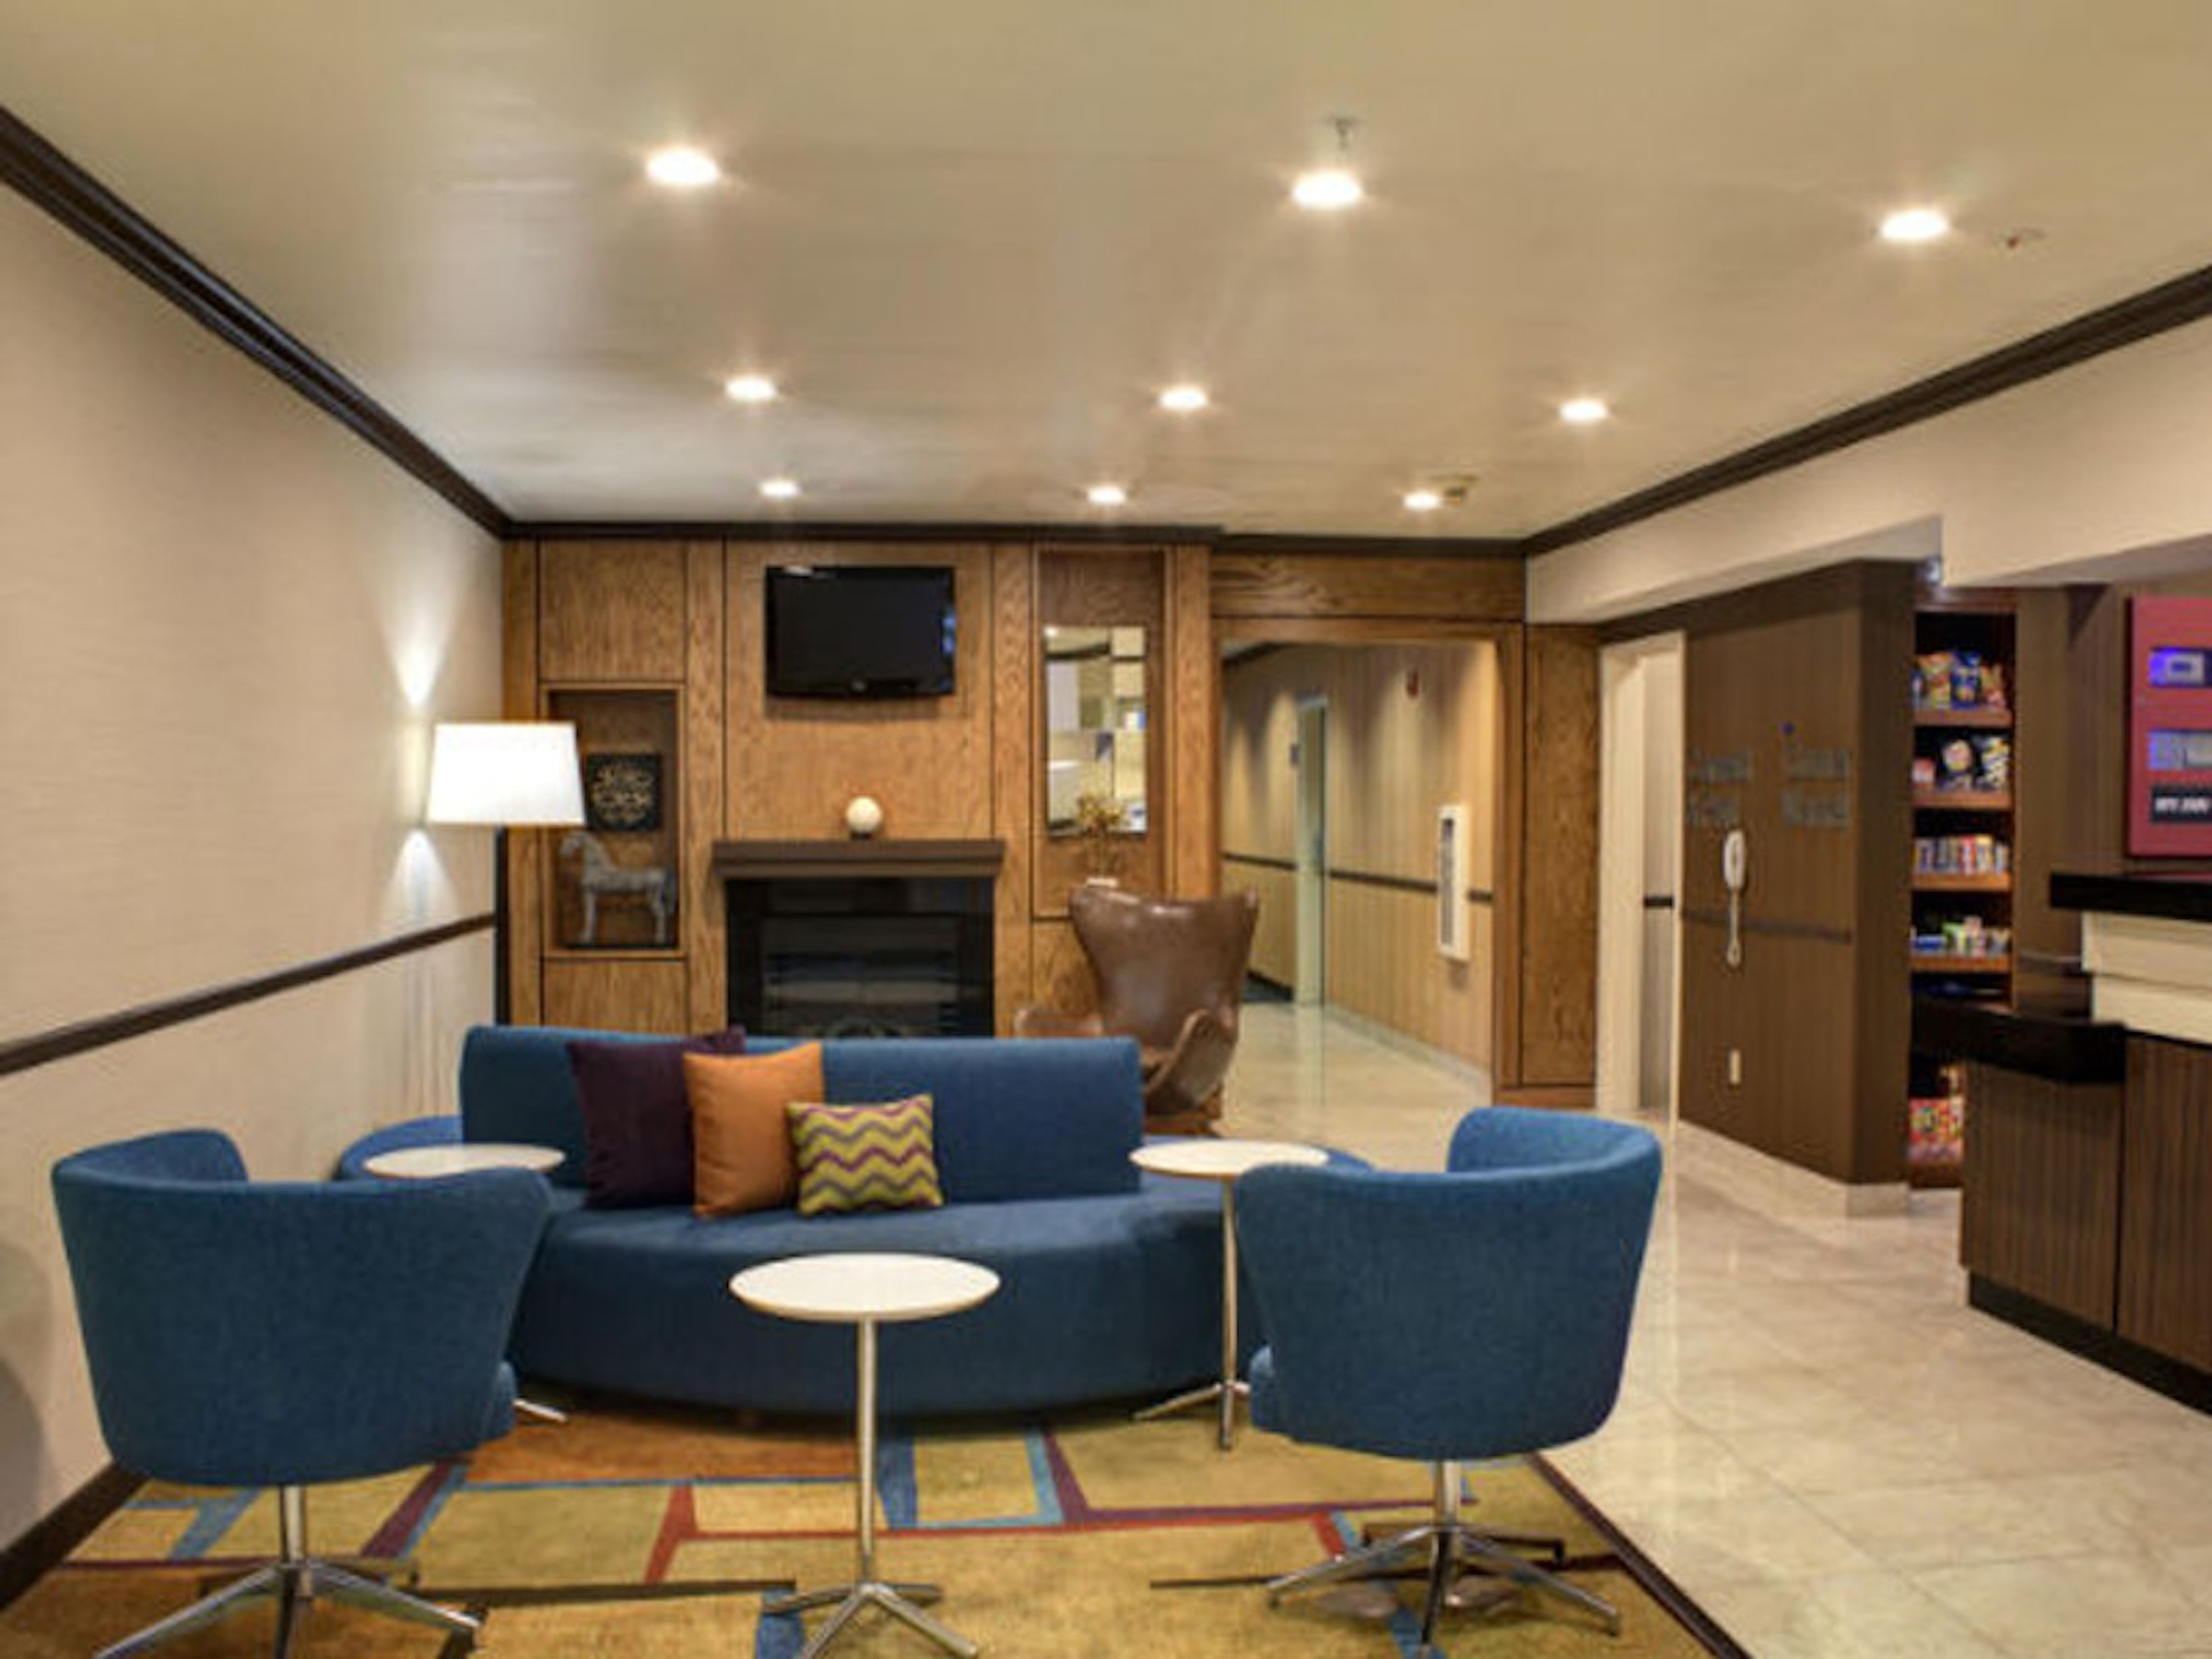 Comfort Inn & Suites Dallas-Addison in Beyond Dallas